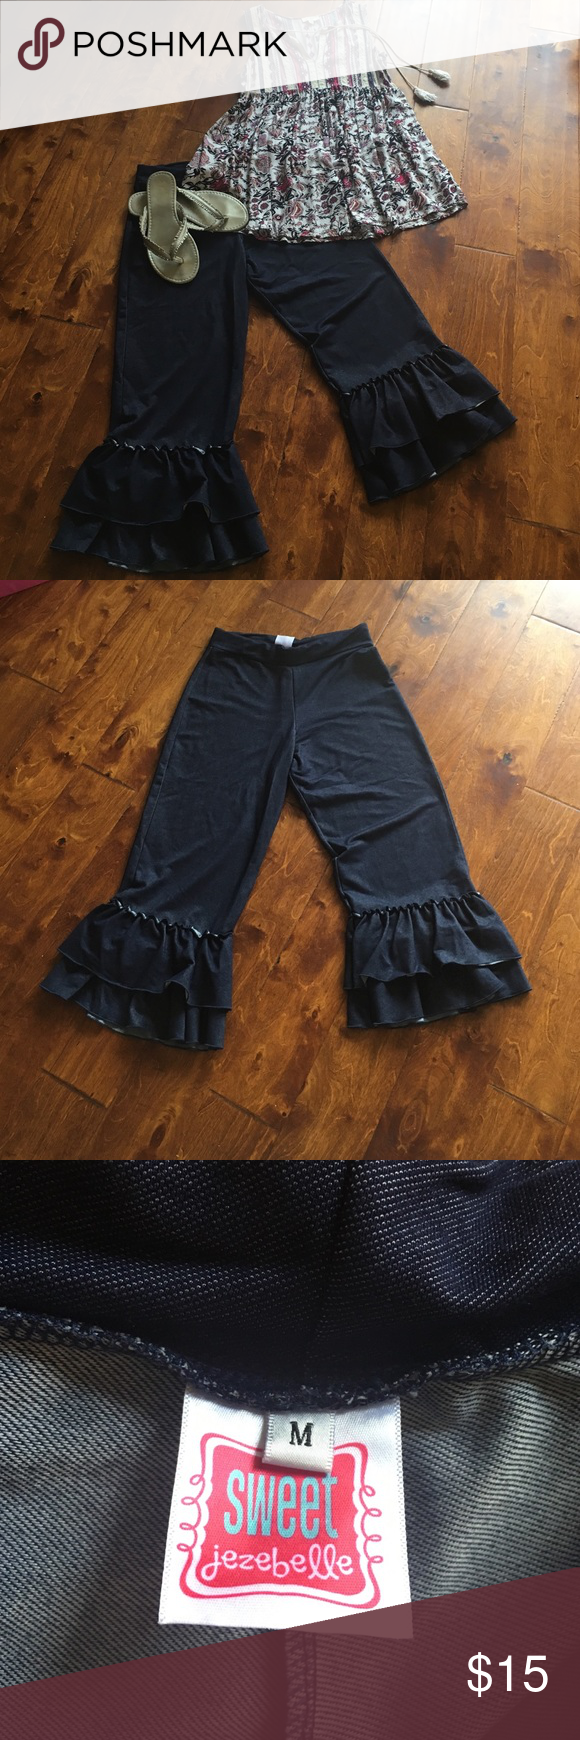 """Ruffle Capris Dark """"denim like"""" ruffle capris. Elastic waist size medium but fits like a small. Very very cute! Perfect with wedges or flats! boutique  Pants Capris"""